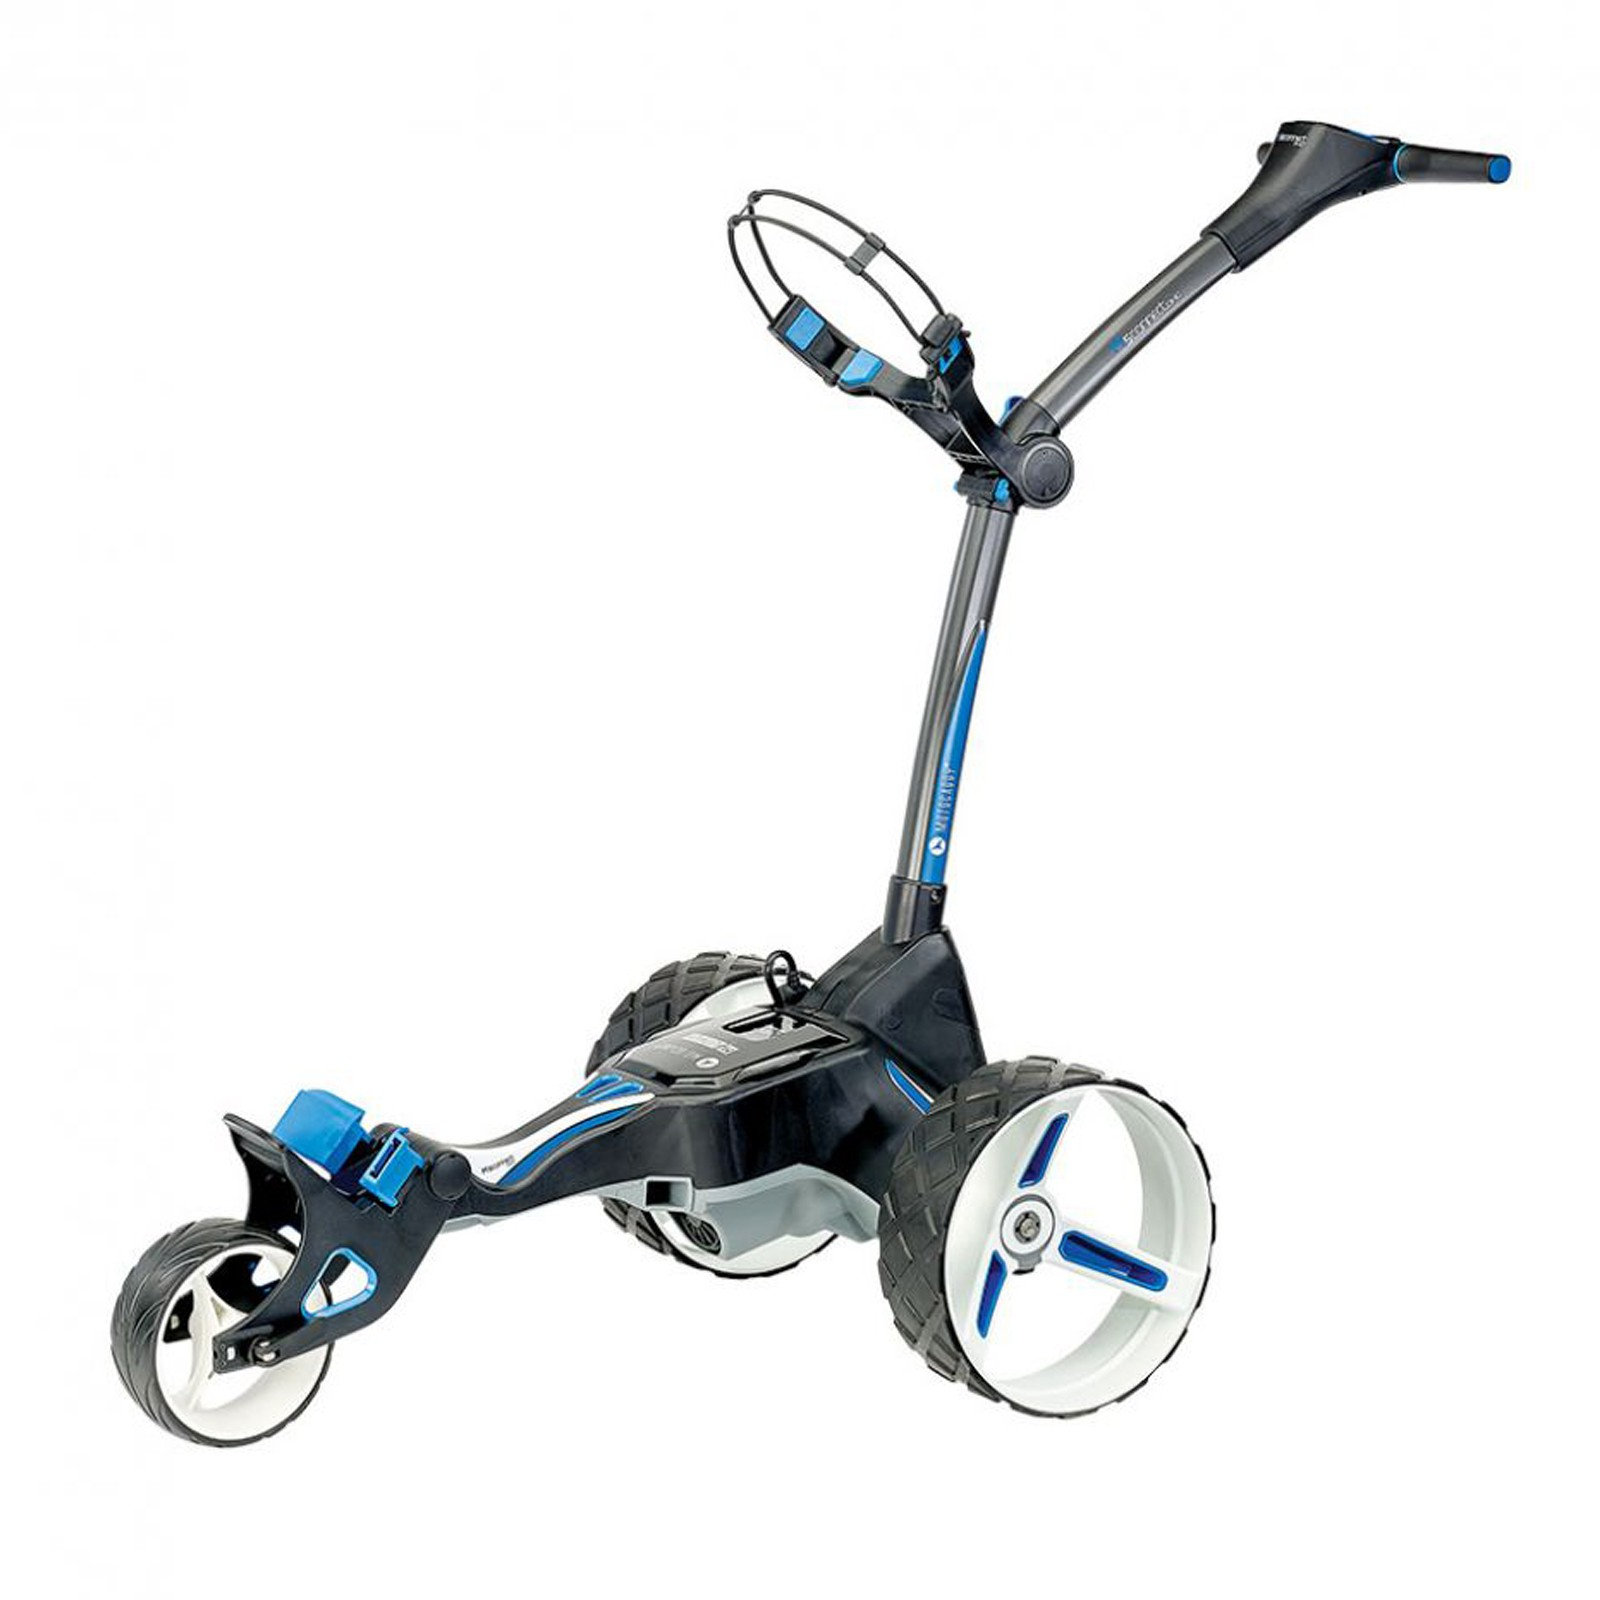 Motocaddy M5 Connect DHC (36 Hole Lithium Battery)